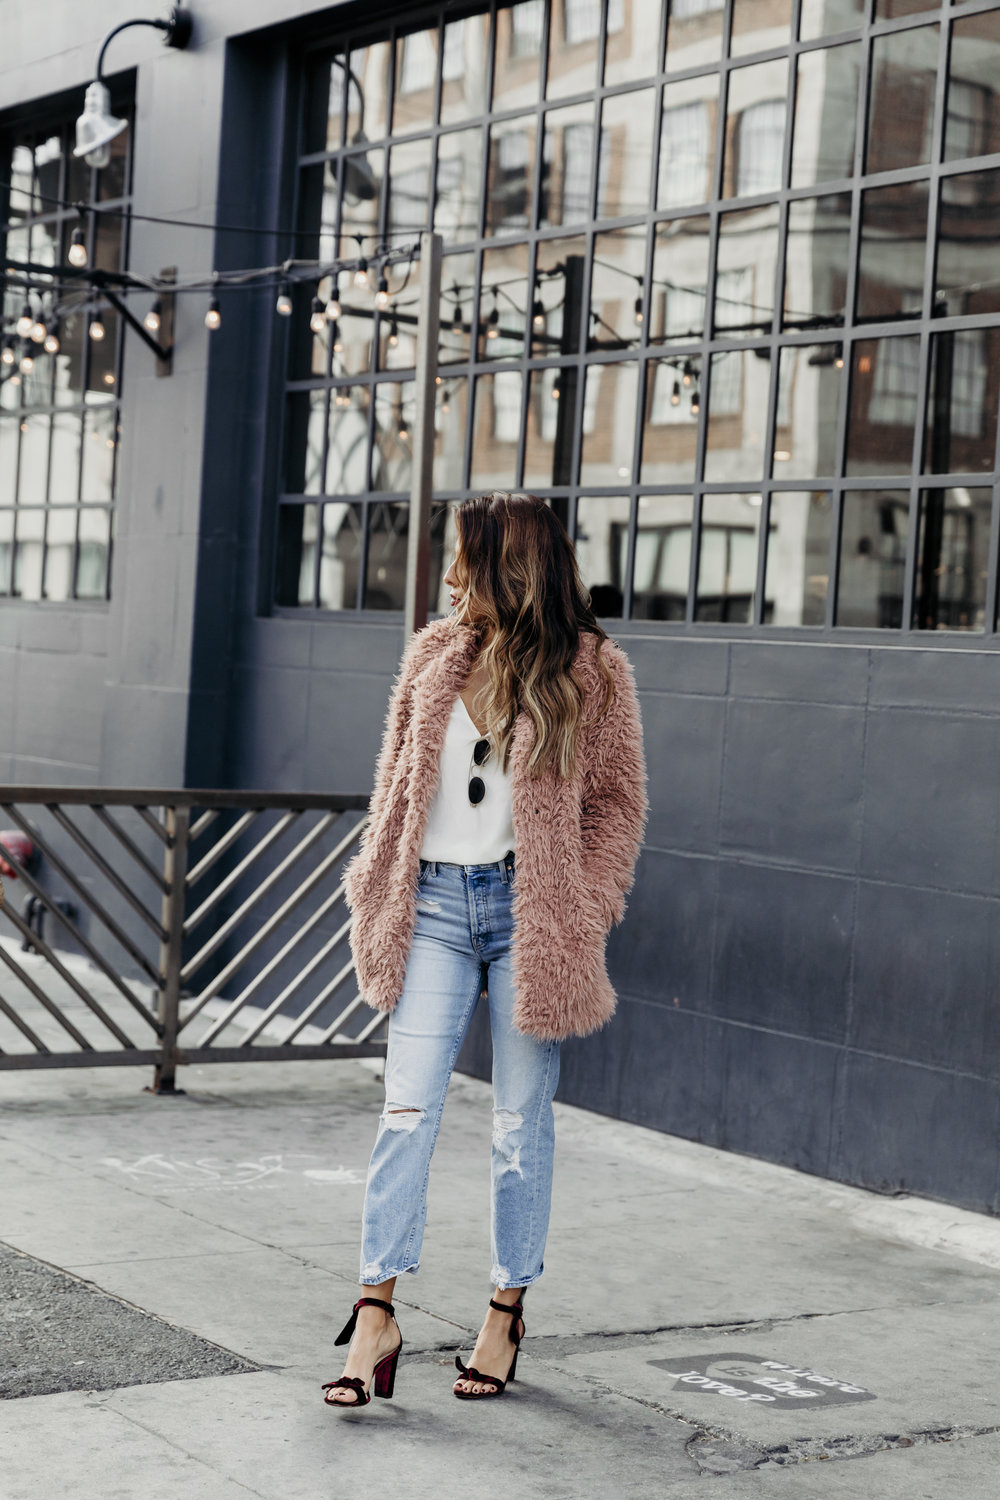 how to style jeans and heels look for winter, cozy fluffy jacket